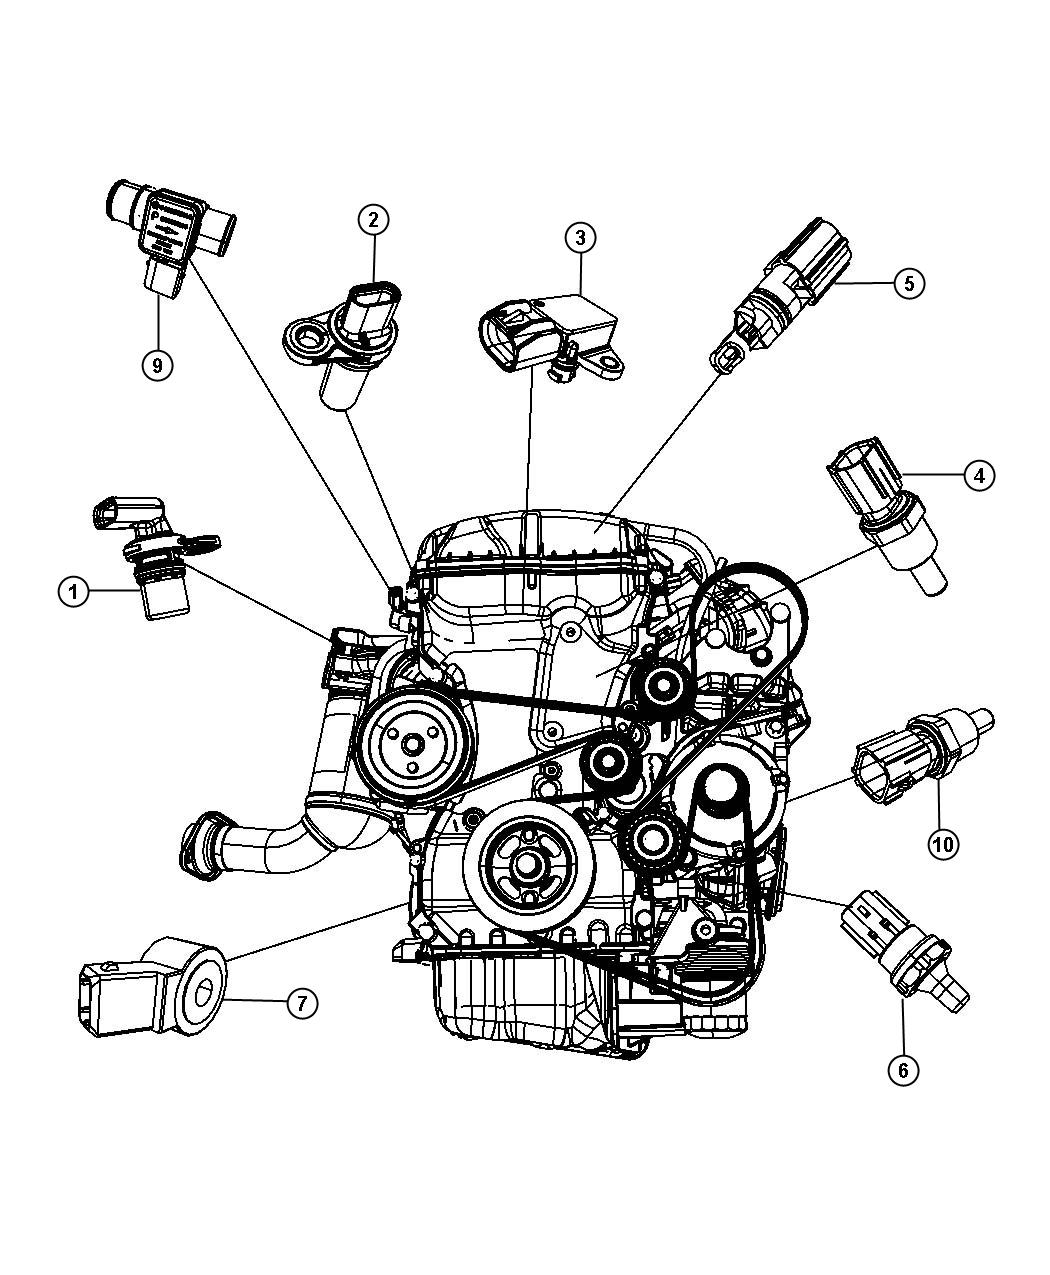 Jeep Patriot Sensor Crankshaft Position Vehicle